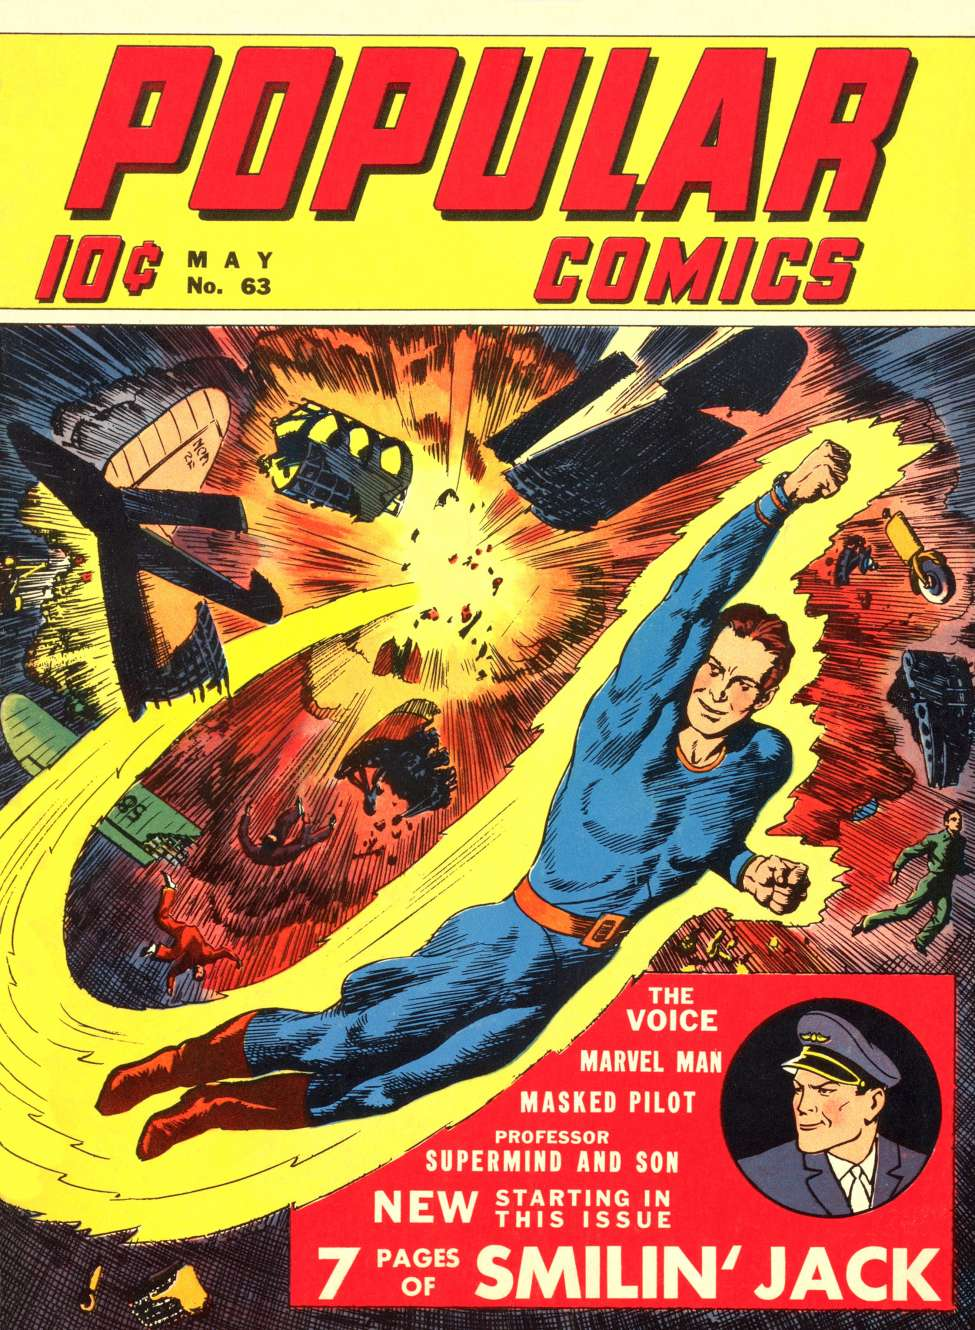 Comic Book Cover For Popular Comics #63